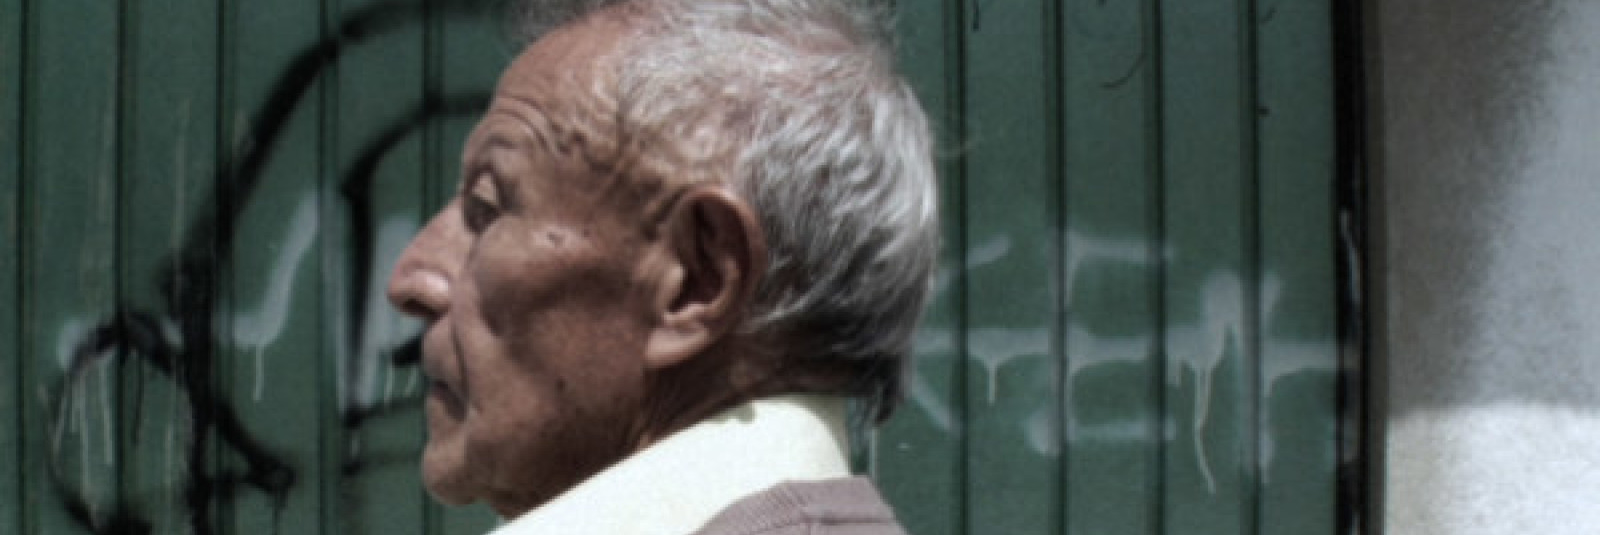 """MALAVENTURA  A film by Michel Lipkes (Mexico, 2011, 67 min., 35mm.) """"Beautiful. […] Lipkes proves in this opera prima that he is a talent to watch."""" –Howard Feinstein, Screen Daily  Lipkes's slow-burning film follows a nameless elderly man (played by non-actor Issac López) on his last day of life in the seedy streets of downtown Mexico City. Beset by memories, he roams through his past while everyday life slips by him. """"Rendered with intensity and rigor"""" (Robert Koehler, Variety ), Malaventura marks the auspicious and dignified filmmaking debut of film critic and programmer Lipkes.  Saturday, September 7 at 9pm; and Monday, September 9 at 7pm."""